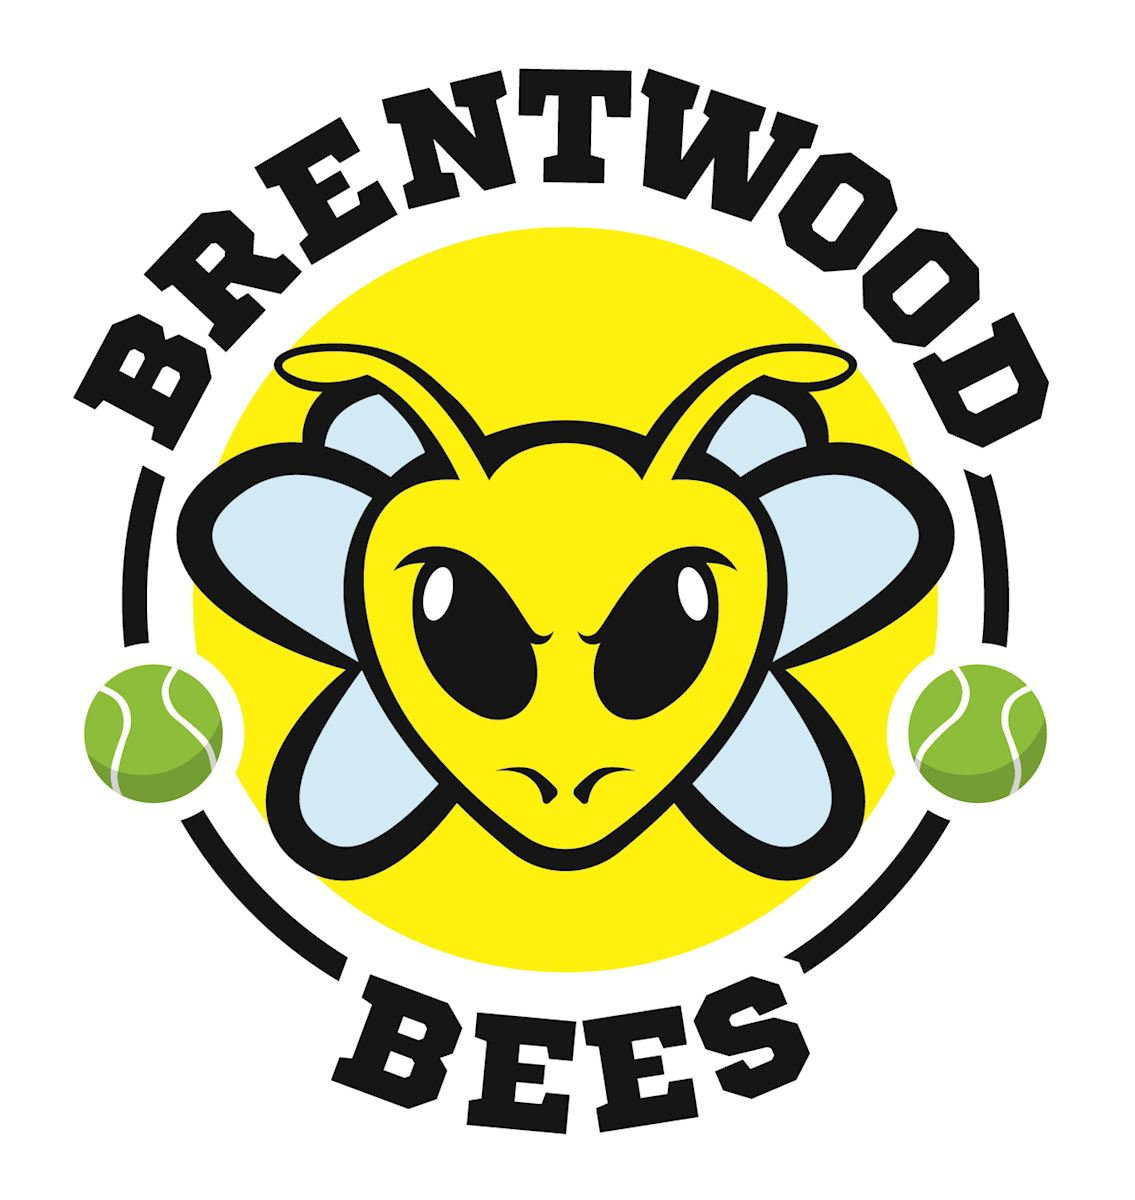 Brentwood Bees